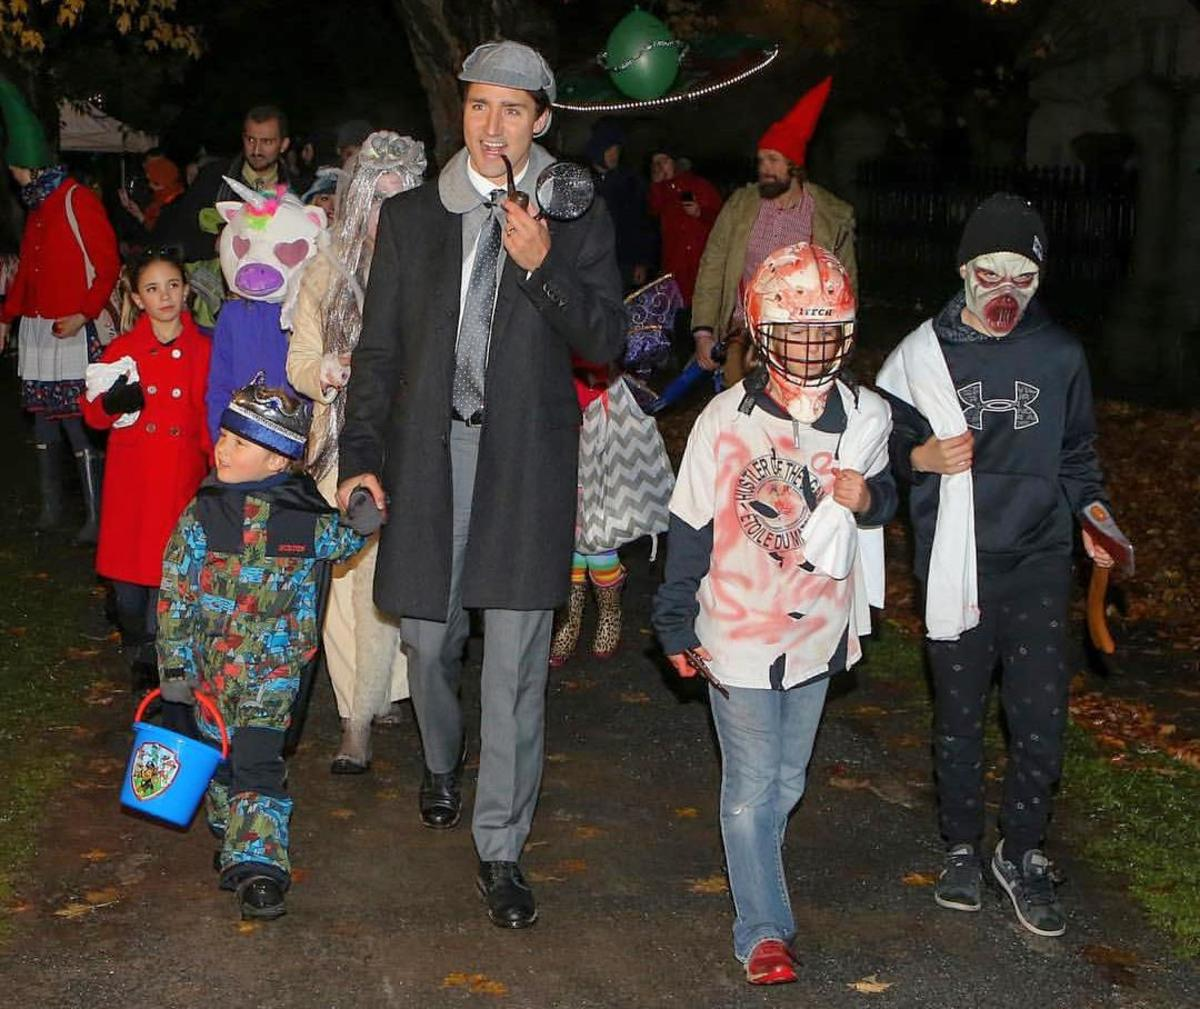 Prime Minister Trudeau dressed as Sherlock Holmes went trick or treating with his family, 2018.